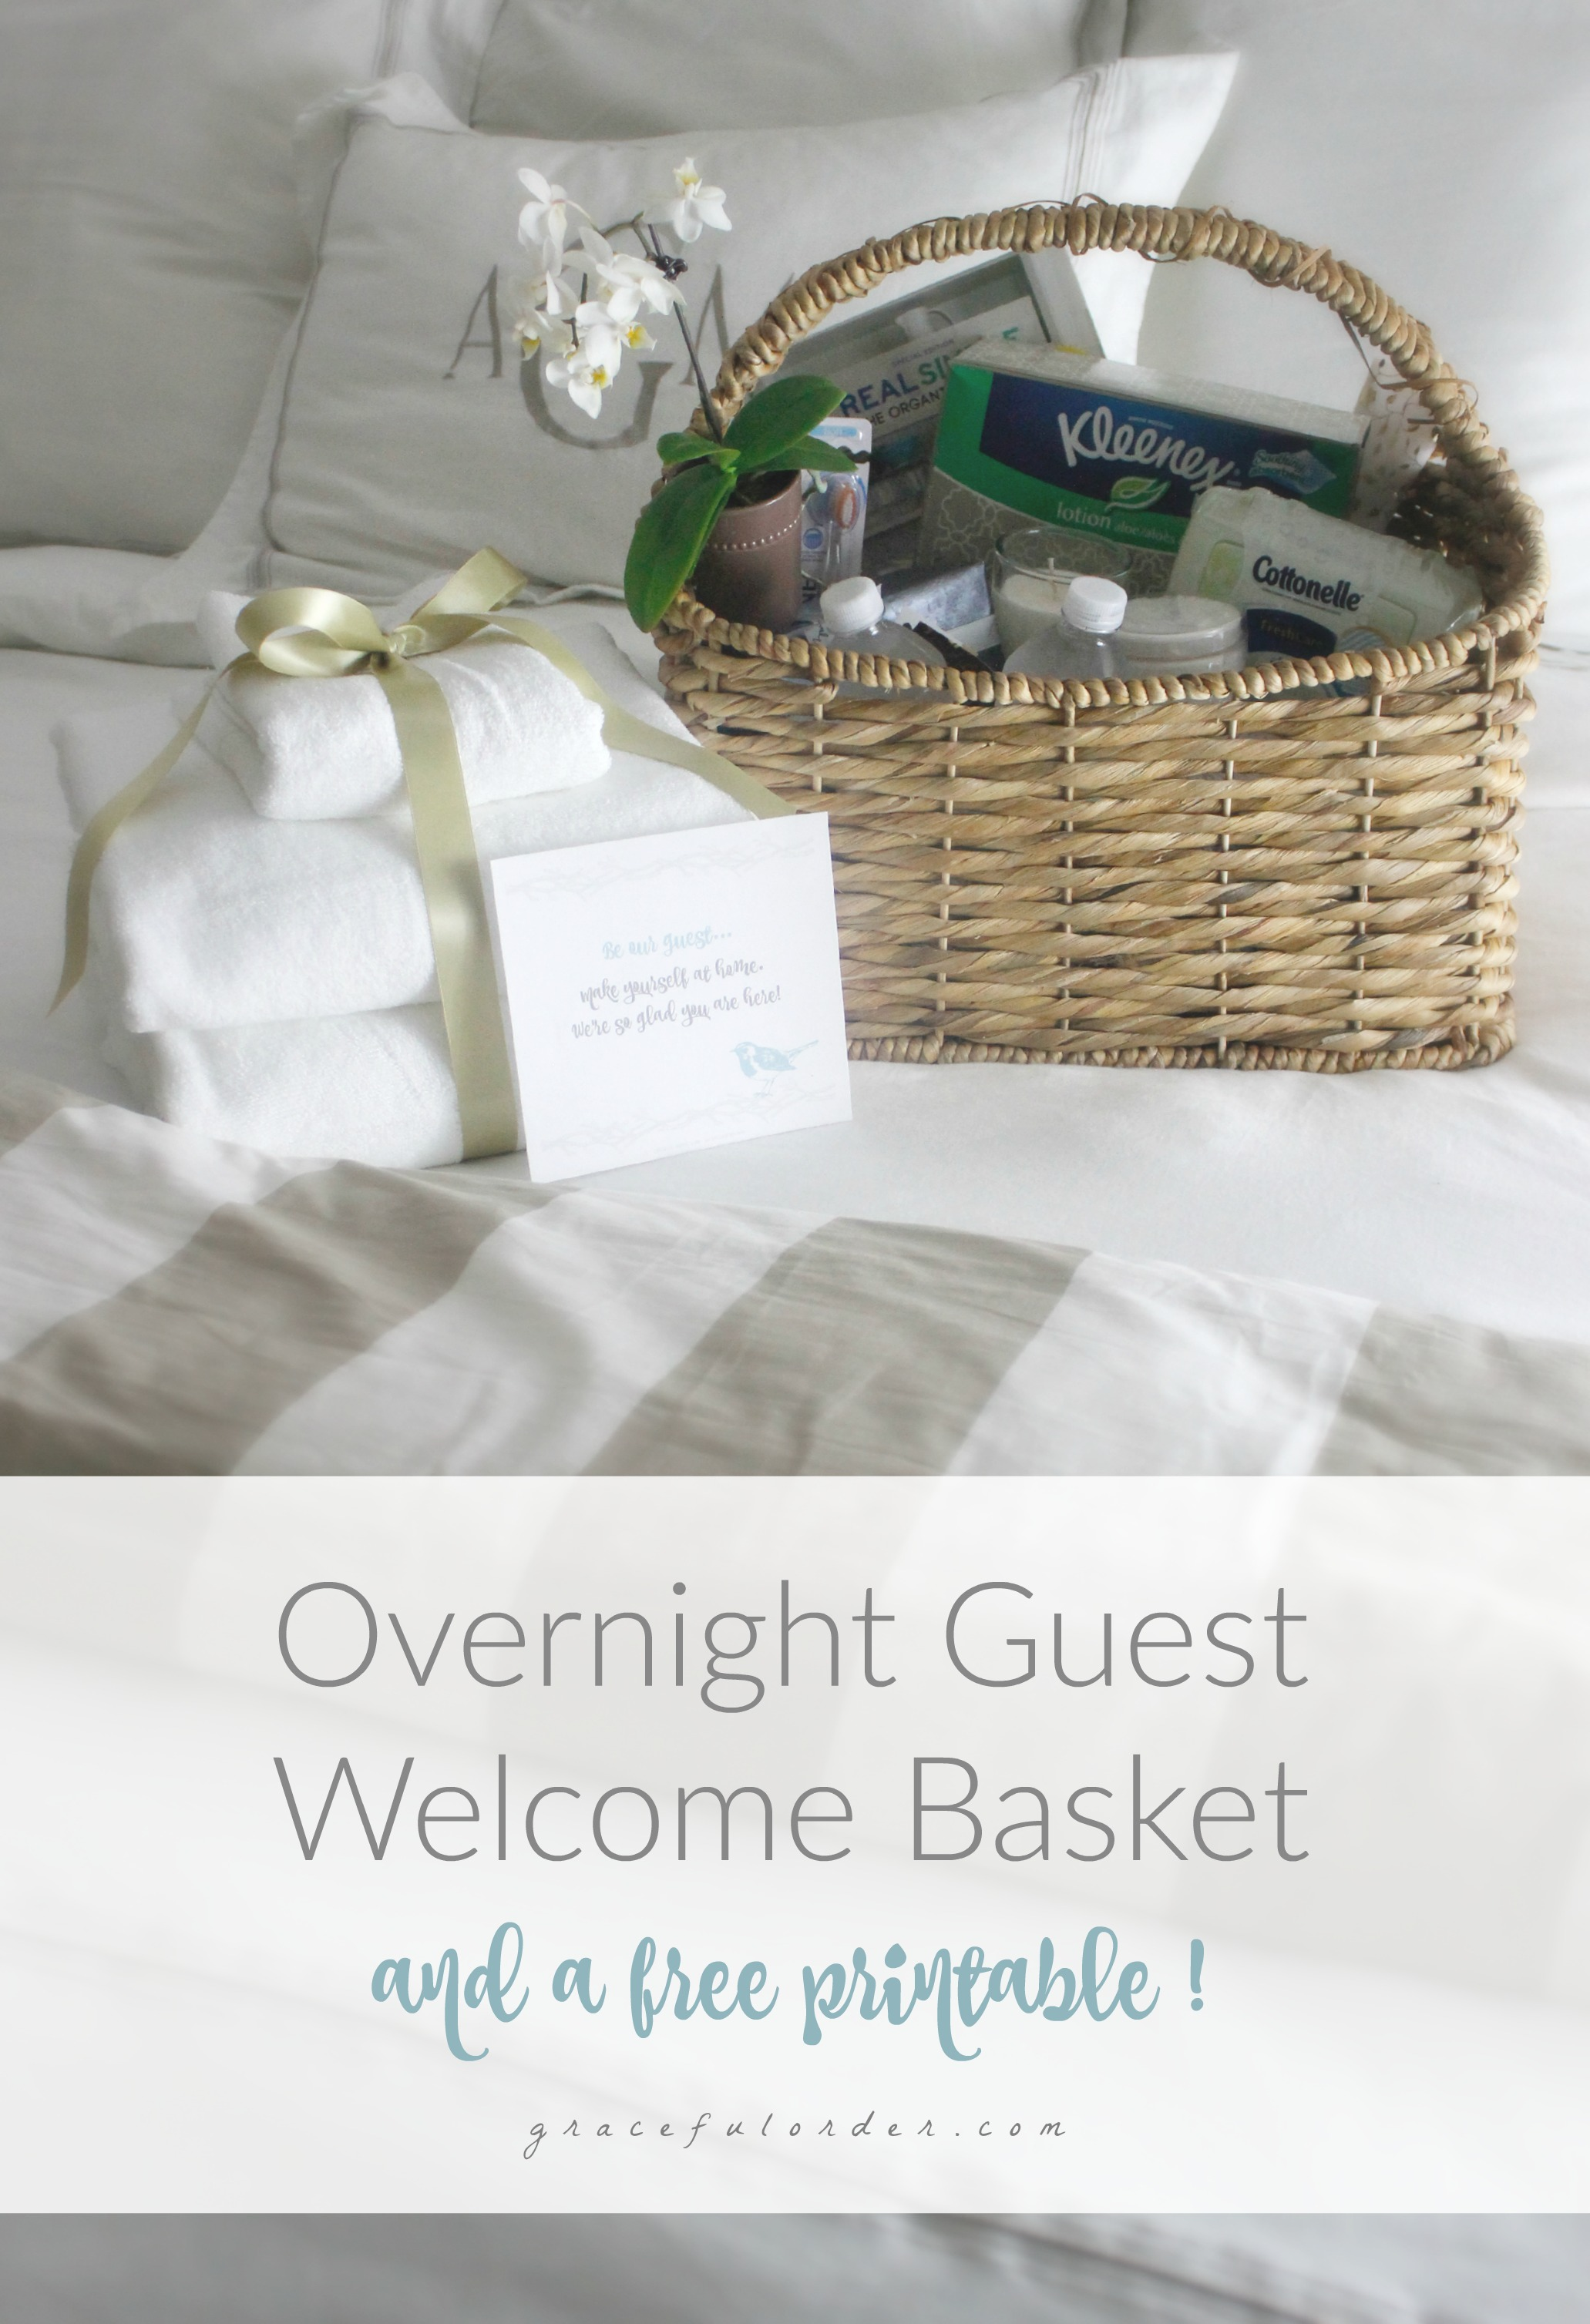 Overnight Guest Welcome Basket - Graceful Order